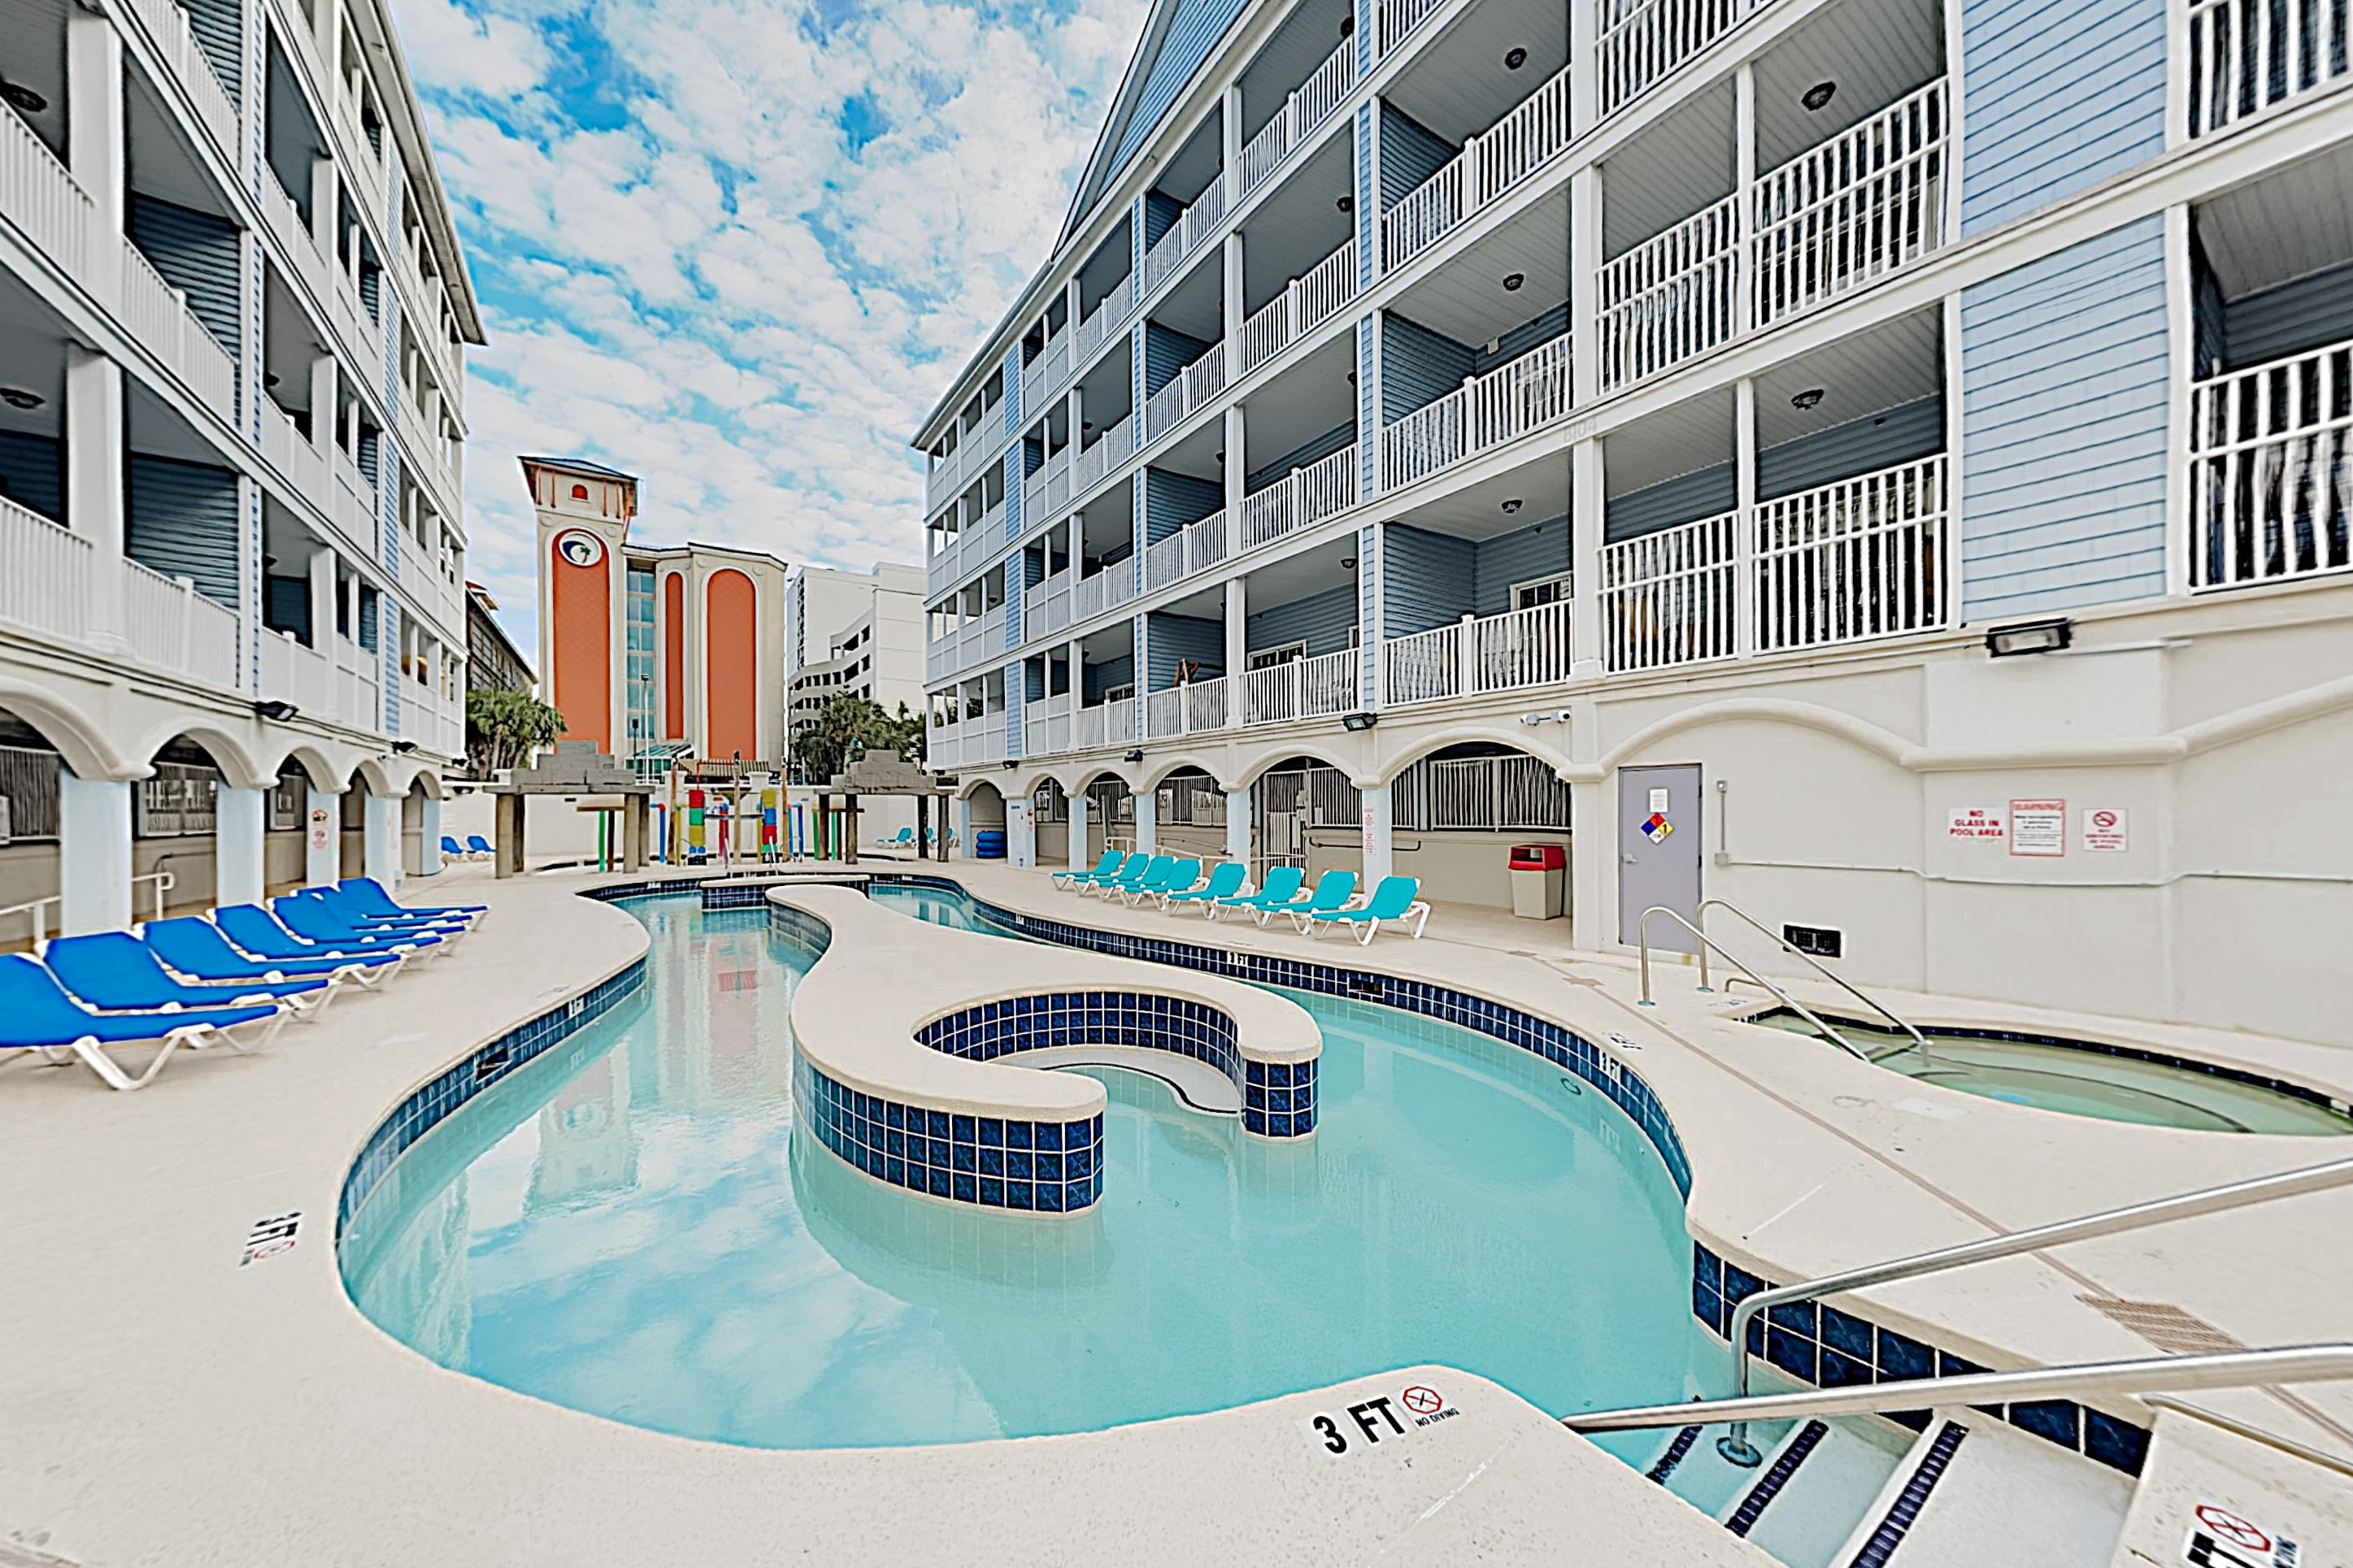 Property Image 2 - 1 Block to Beach! Downtown w/ Lazy River, Hot Tubs